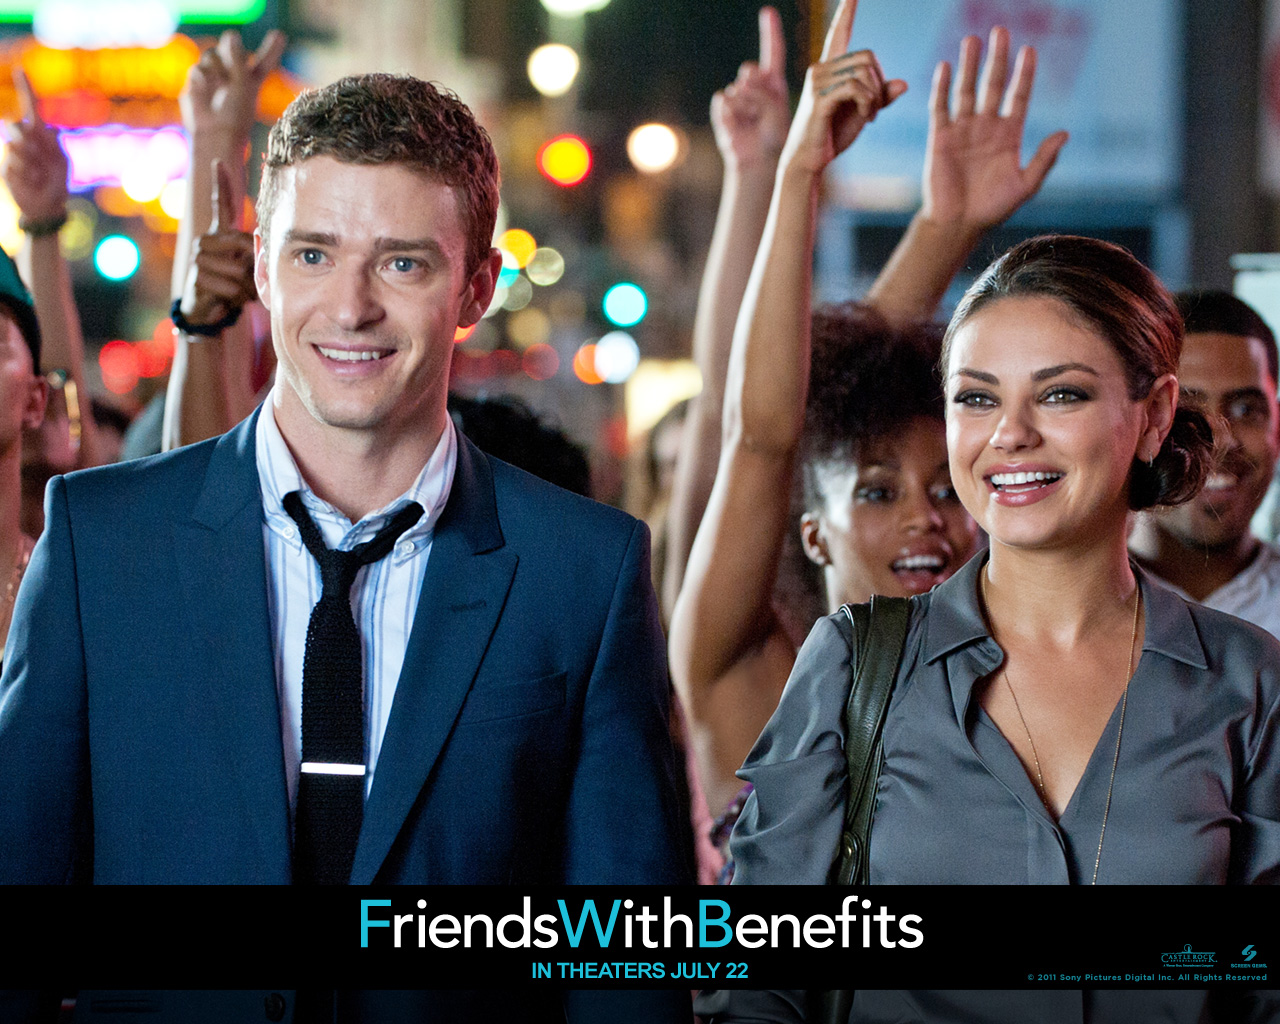 http://4.bp.blogspot.com/-Th5LAT7E50E/TjQ-7AYBwGI/AAAAAAAAB8U/OsIJXww-viU/s1600/Justin_Timberlake_in_Friends_with_Benefits_Wallpaper_5_1024.jpg